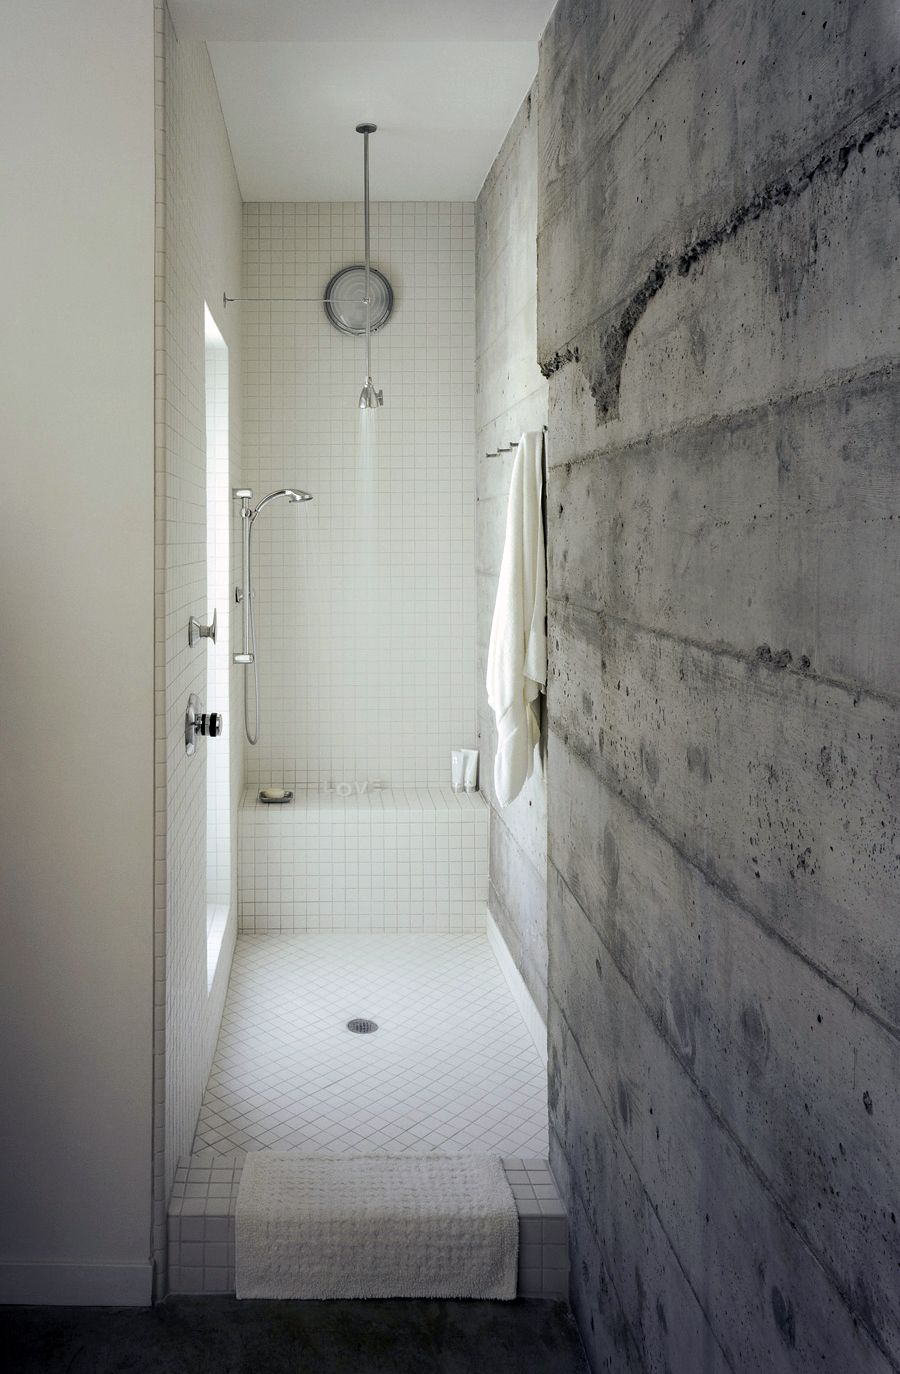 Board-formed concrete bath wall | Materials - Concrete/Cement ...